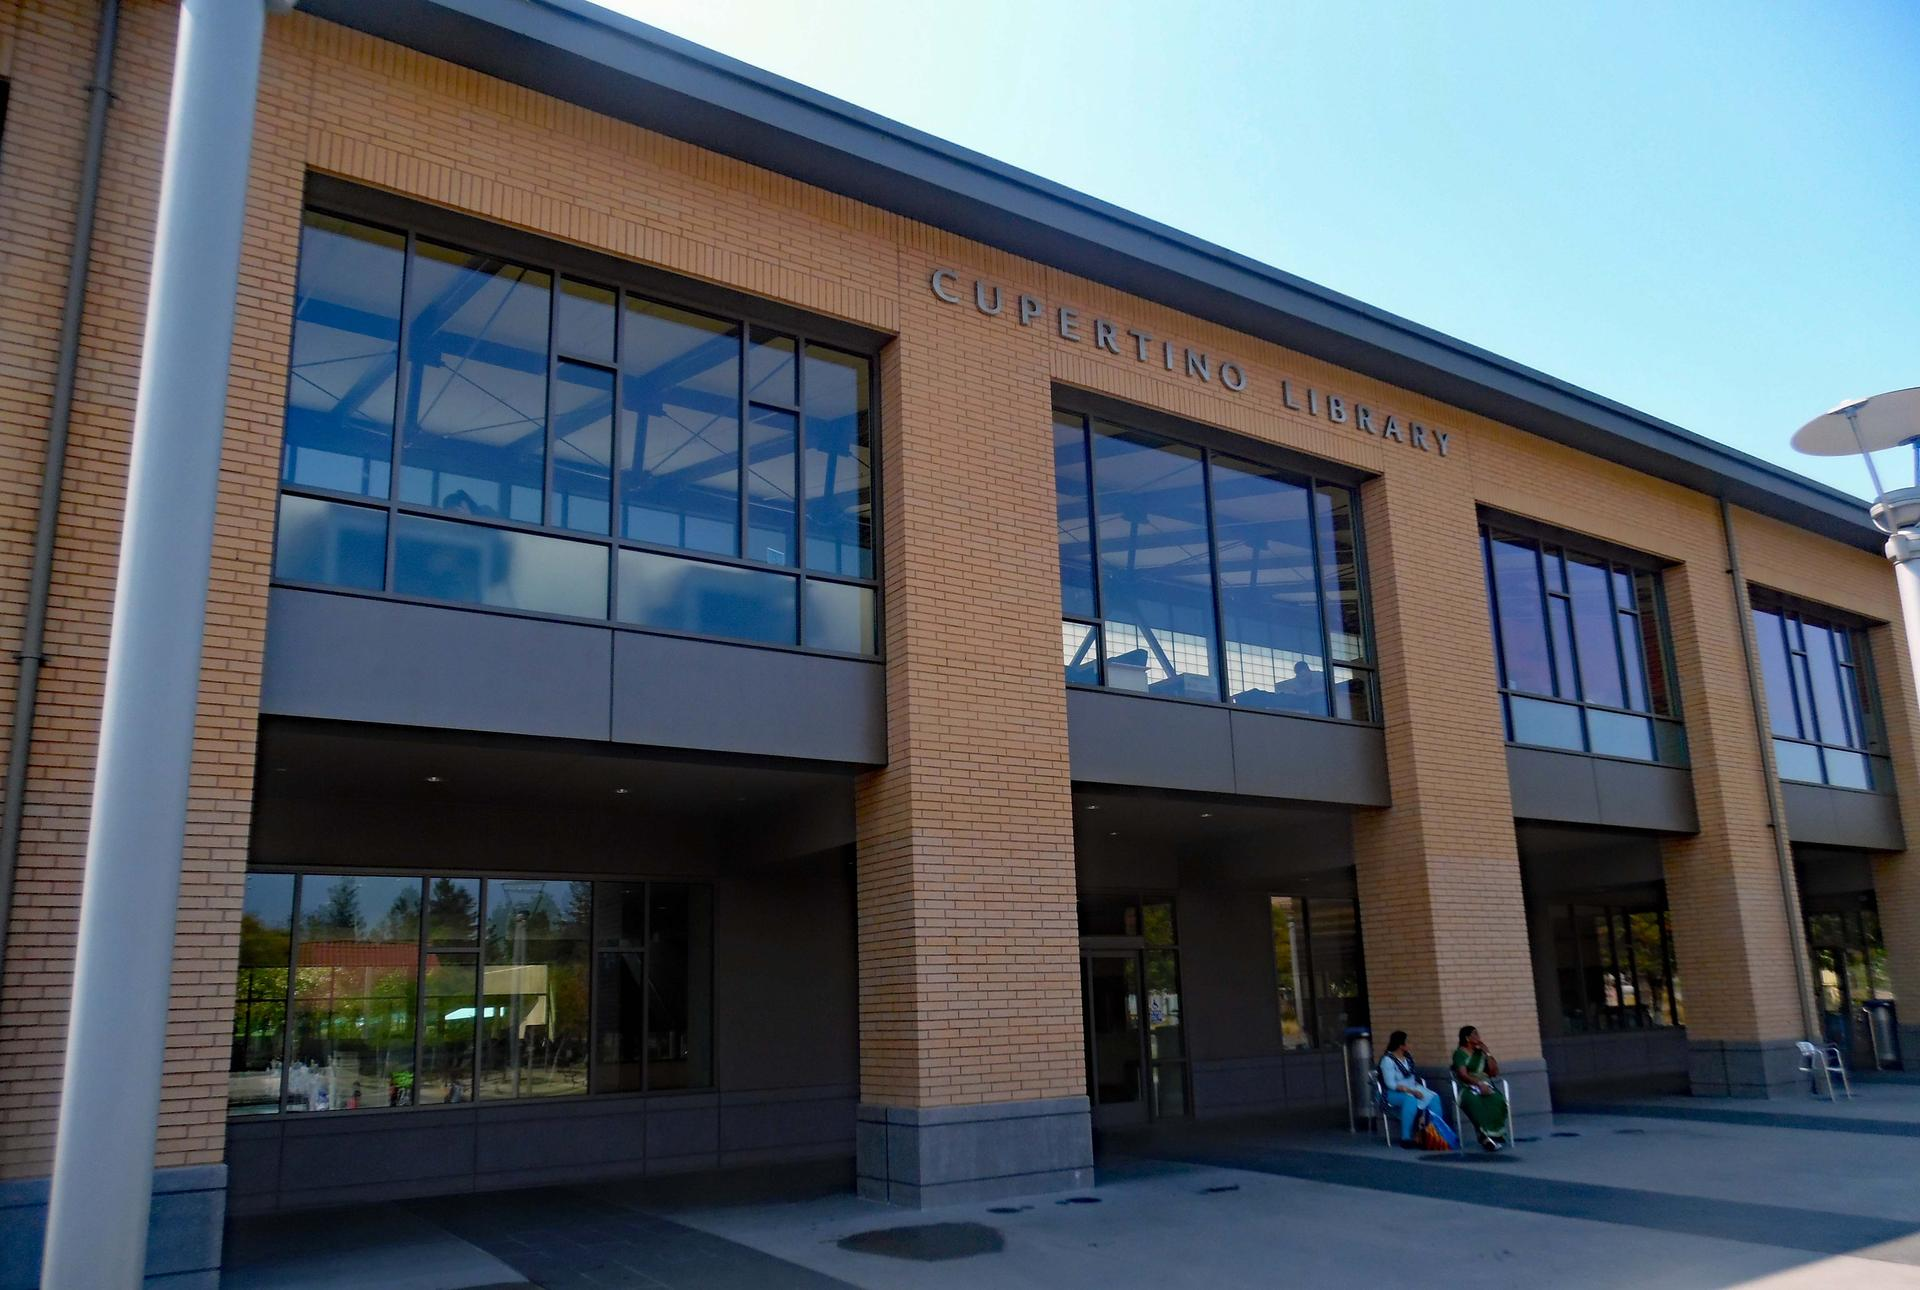 Cupertino Library to begin offering passport services on April 3